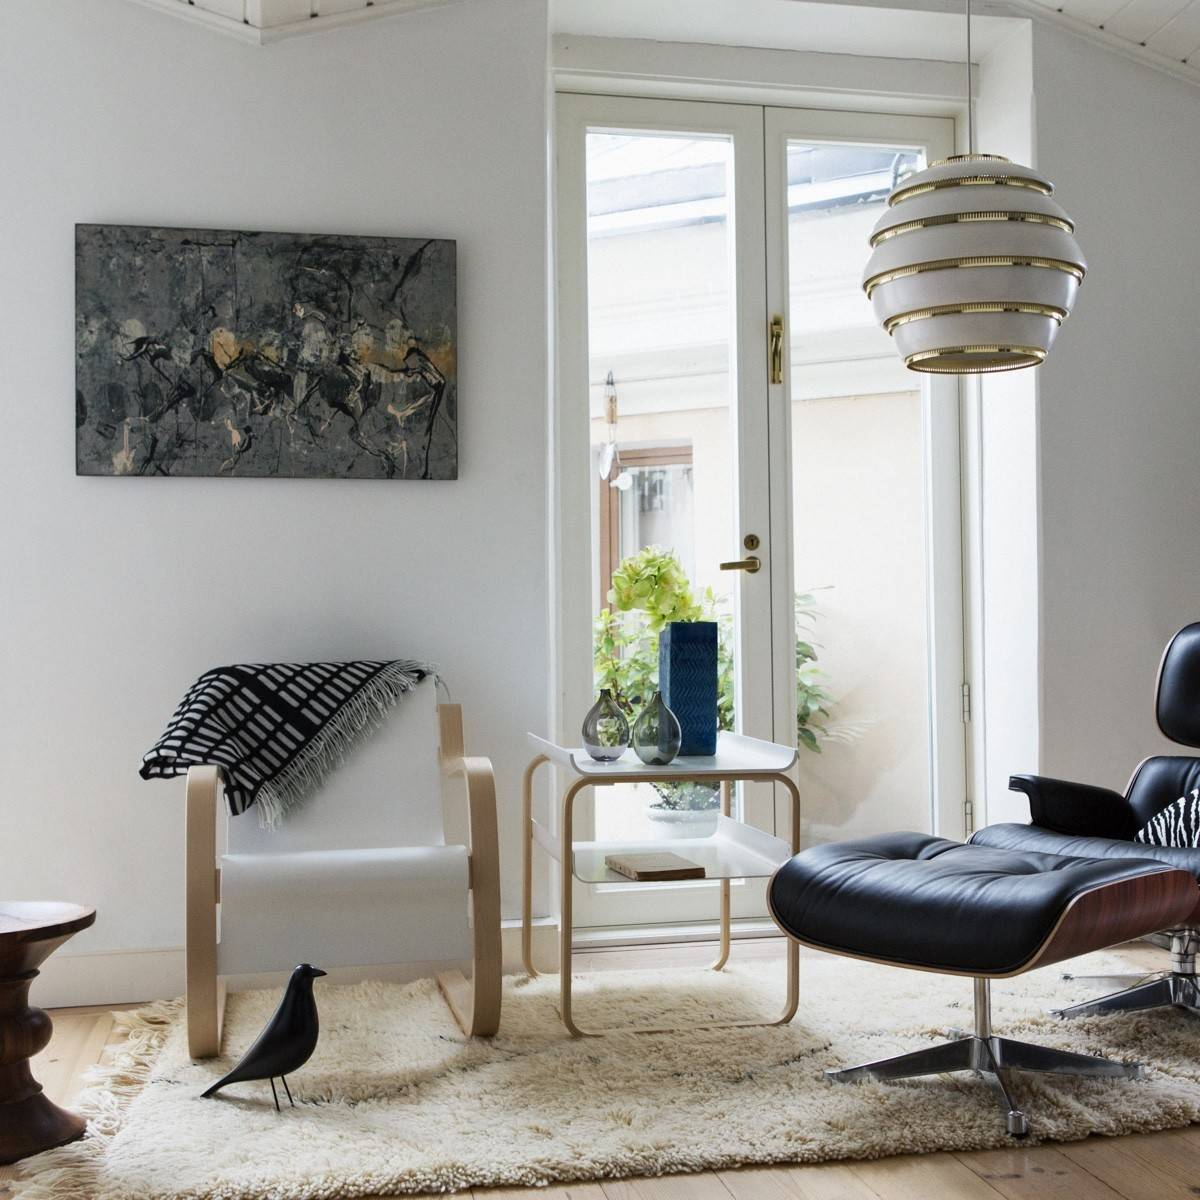 Alvar Aalto Designs Shown Alongside Vitra Design Pieces